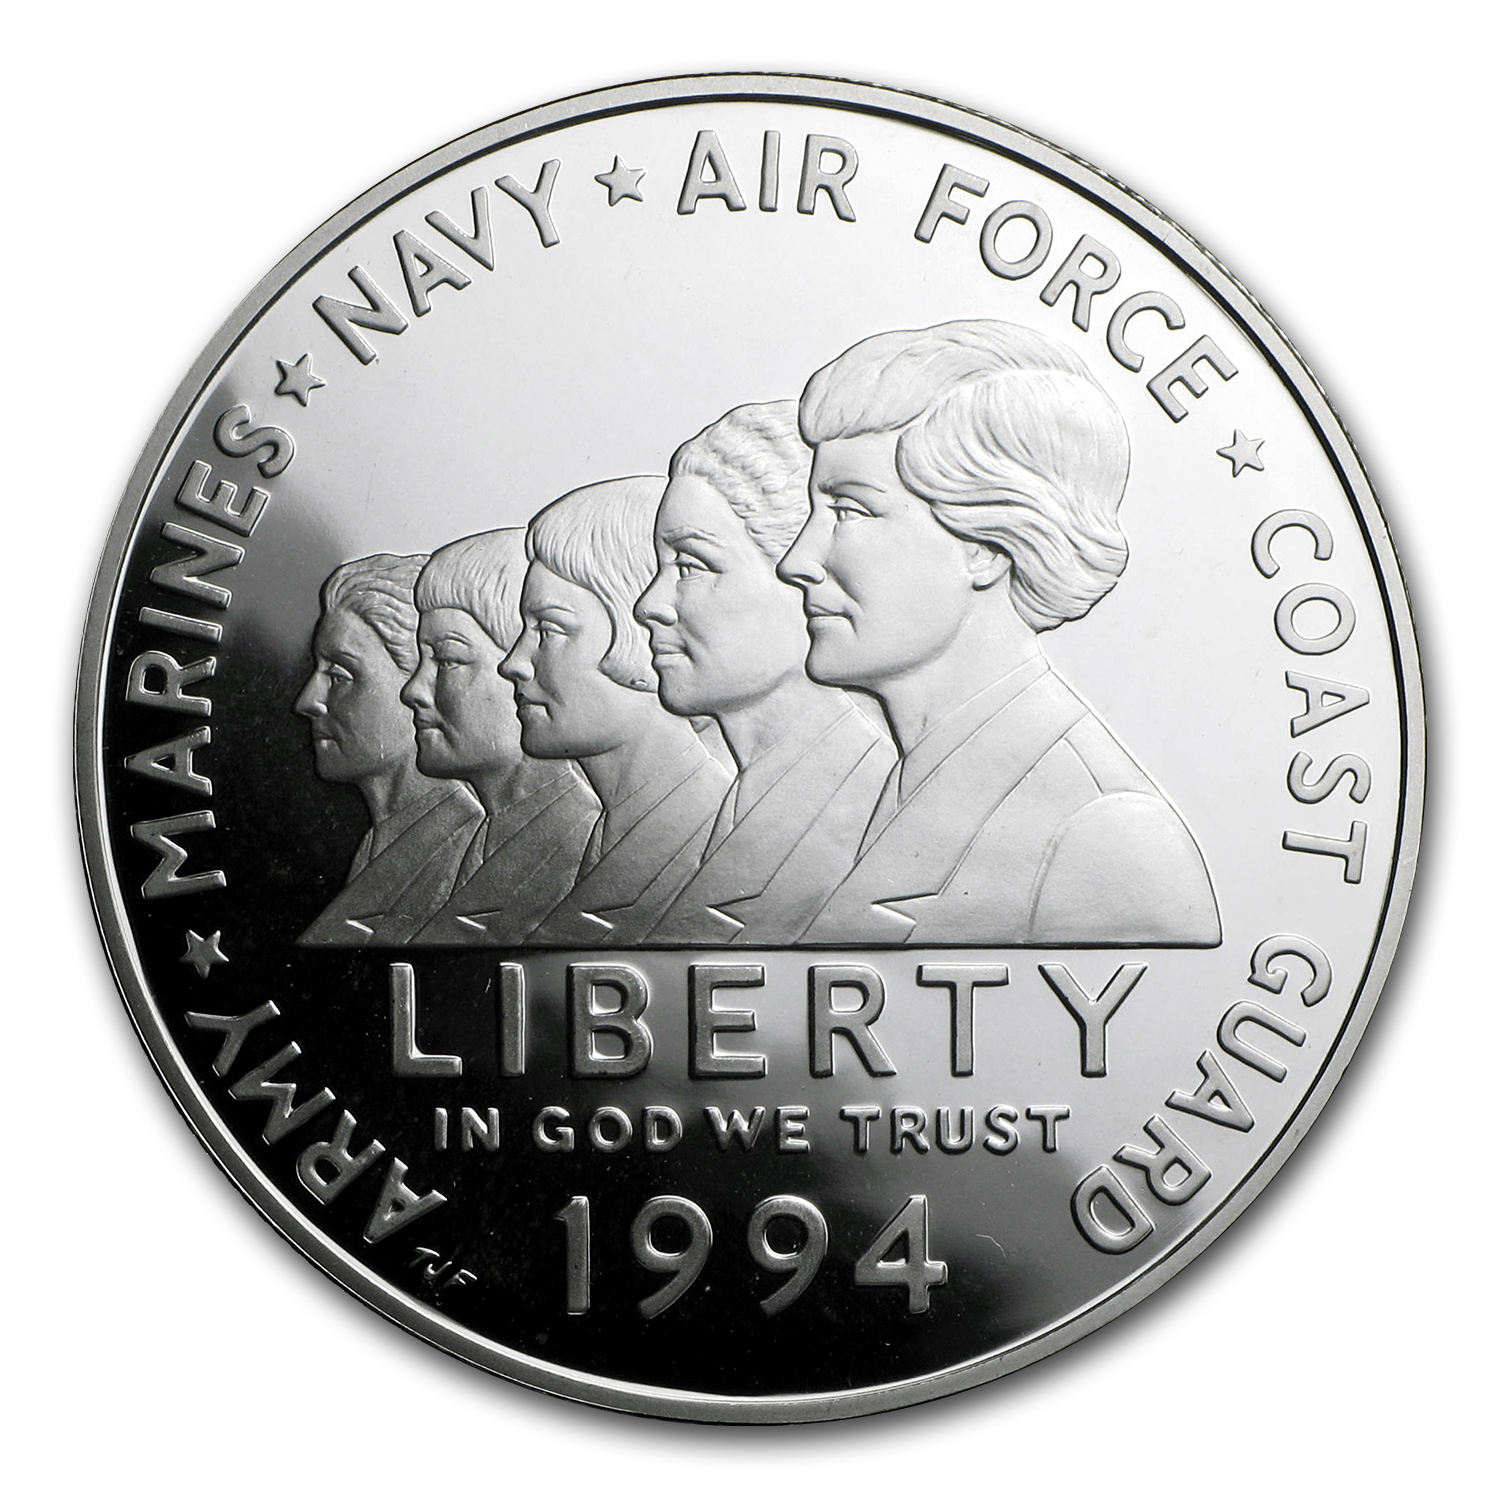 1994-P Women in Military $1 Silver Commem Proof (w/Box & COA)